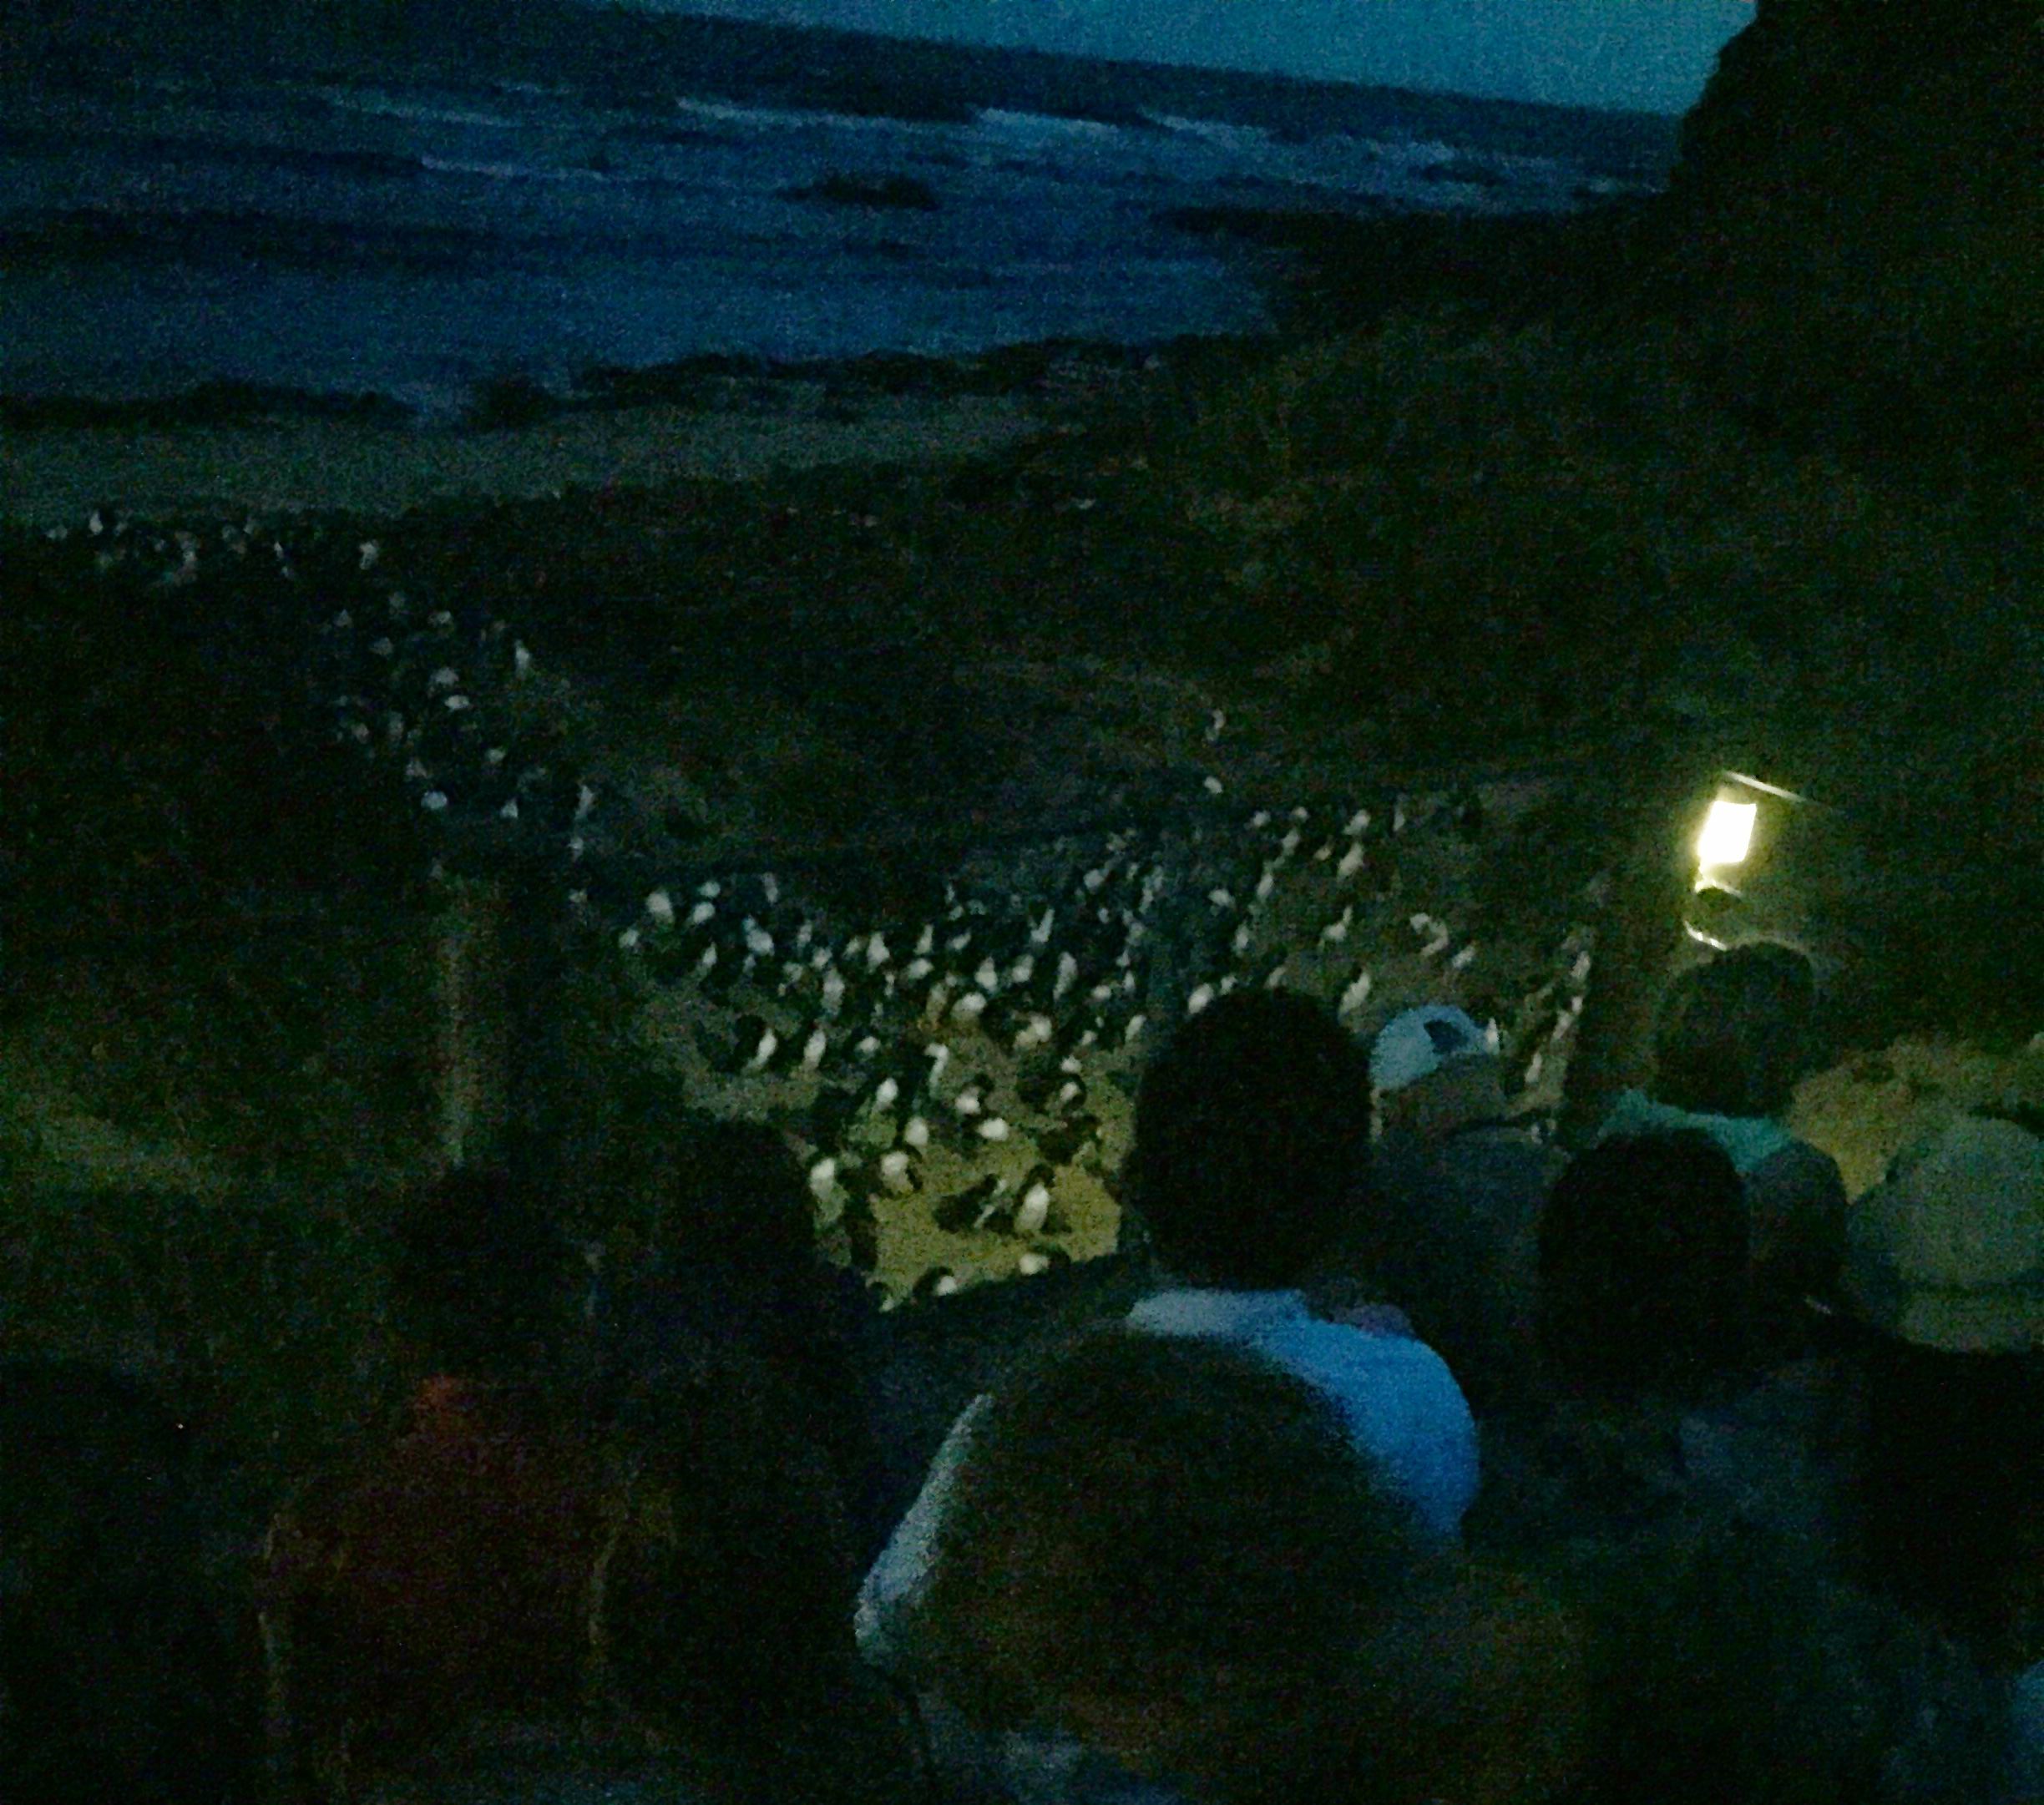 HUNDREDS OF PENGUINS COME BACK LOOKING FOR THEIR FAMILIES